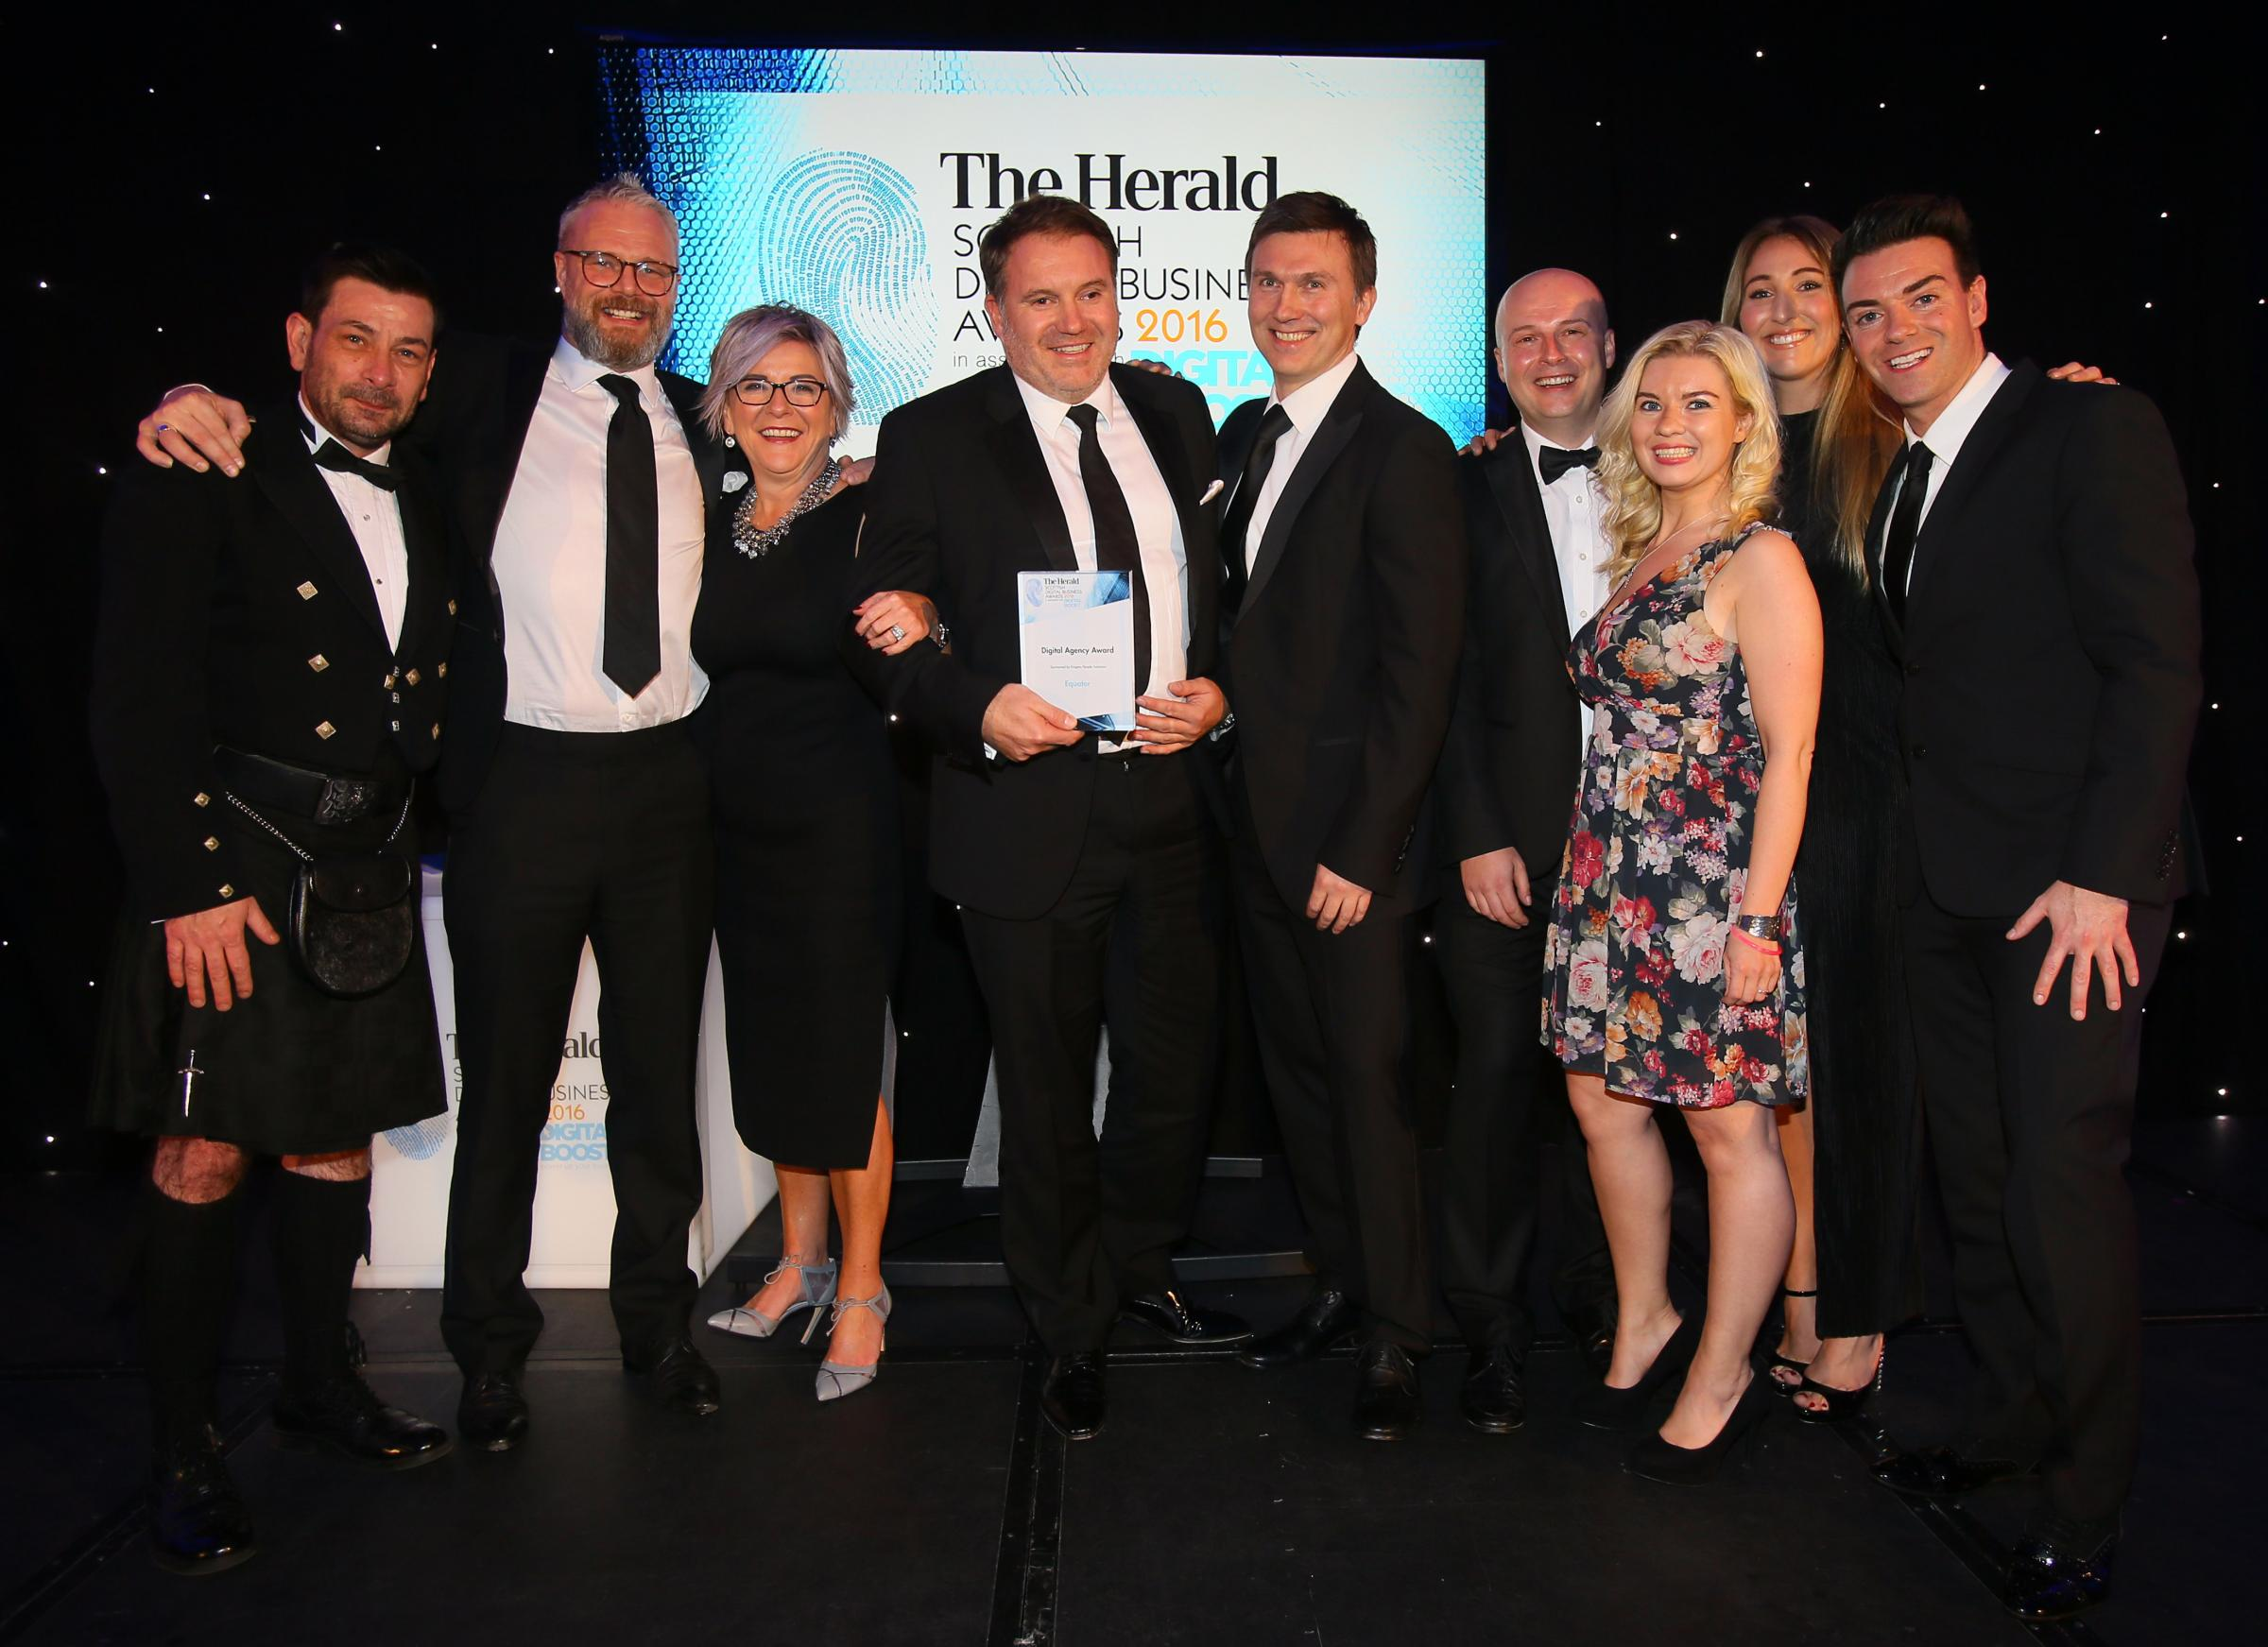 Winner of the Digital Agency Award is Equator. MD John McLeish pictured holding the award. Presenting the award was David Mains, far left of Enigma People Solutions and Host Des Clarke at right. Photograph by Colin Mearns